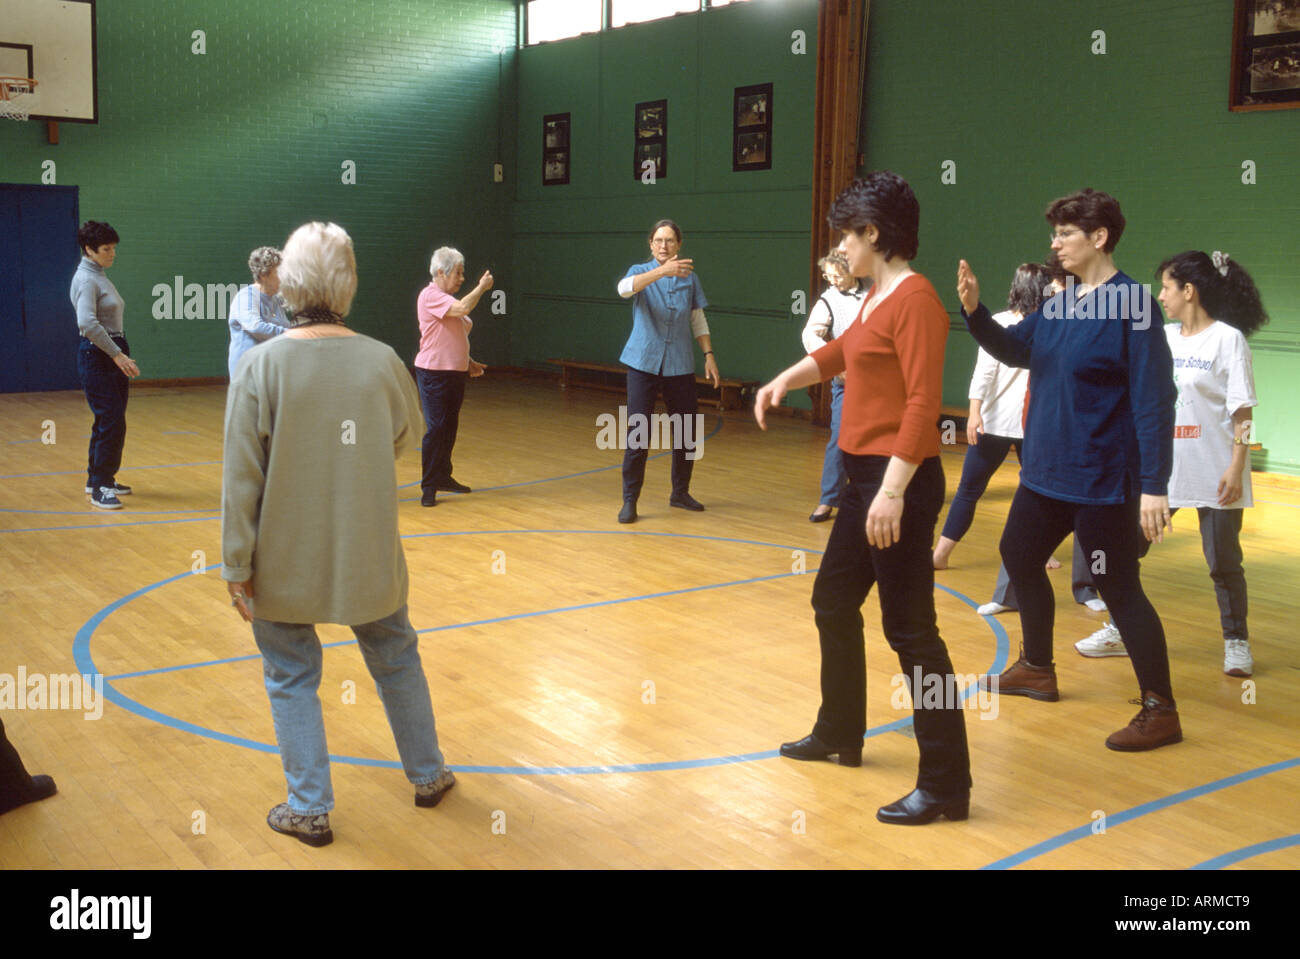 Tai chi class held in community gym - Stock Image